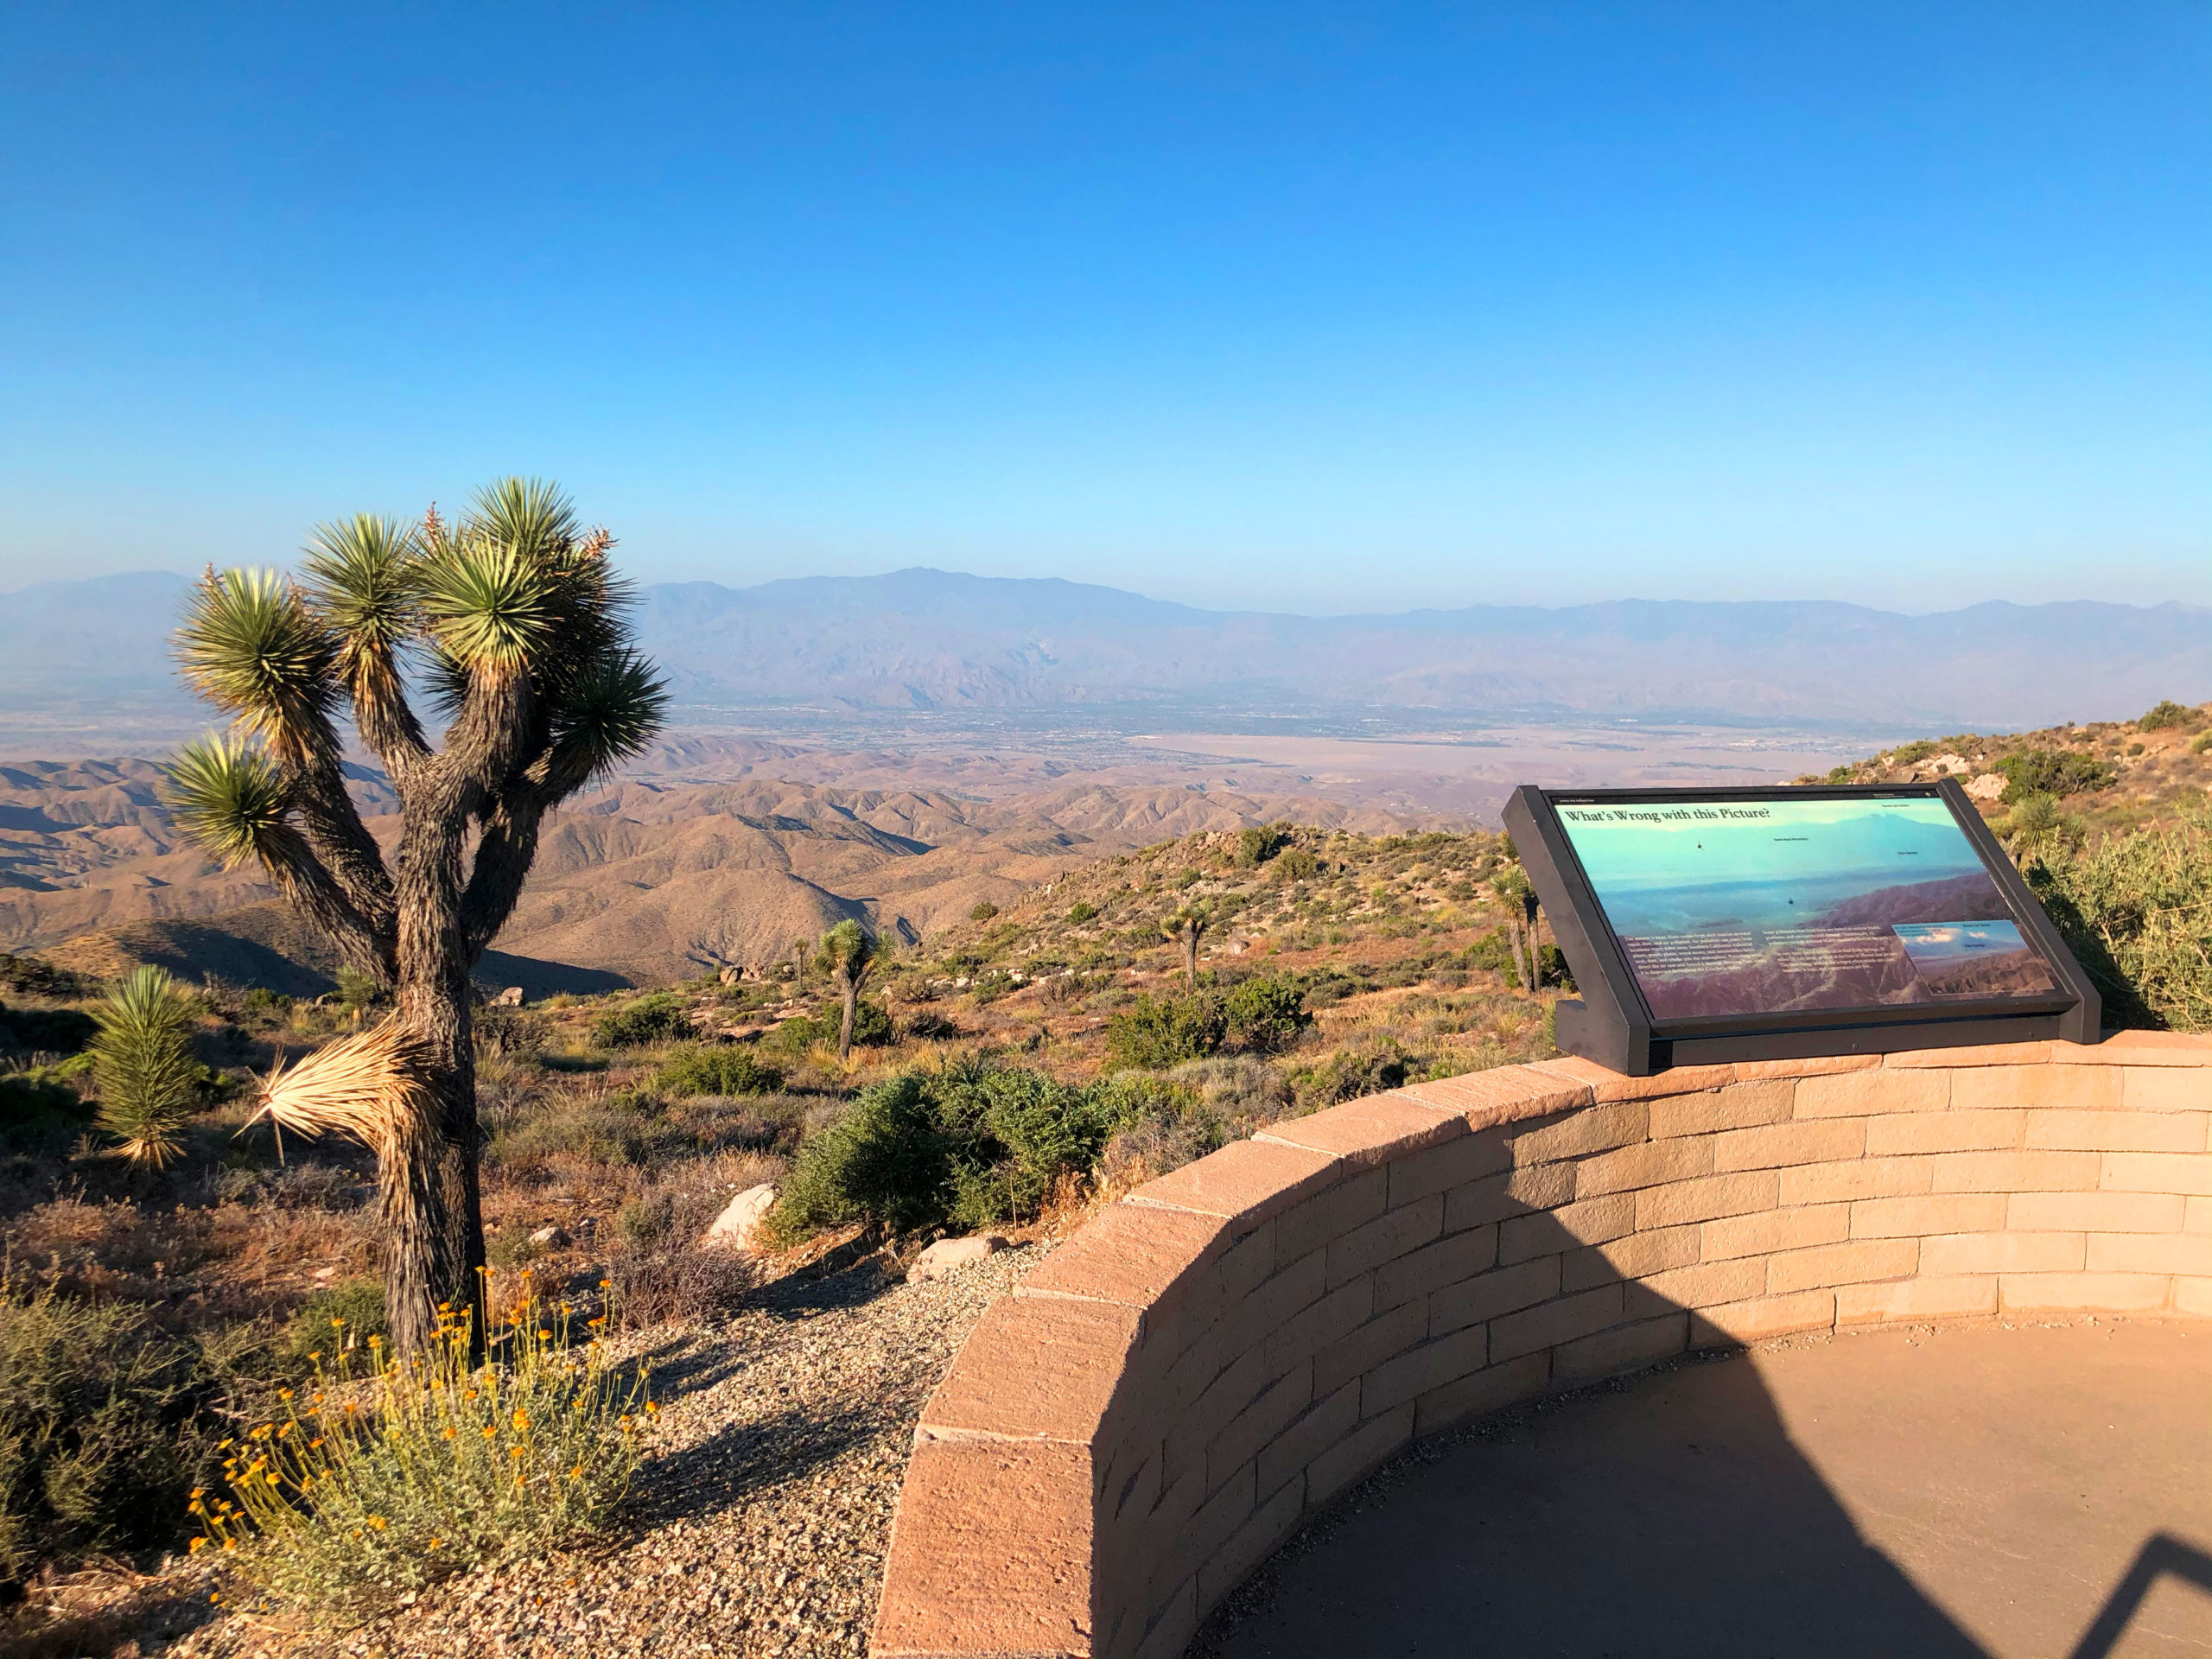 joshua-tree-national-park-adventure-tour-hiking-climbing-camping-ada-lookout-from-keys-view-3